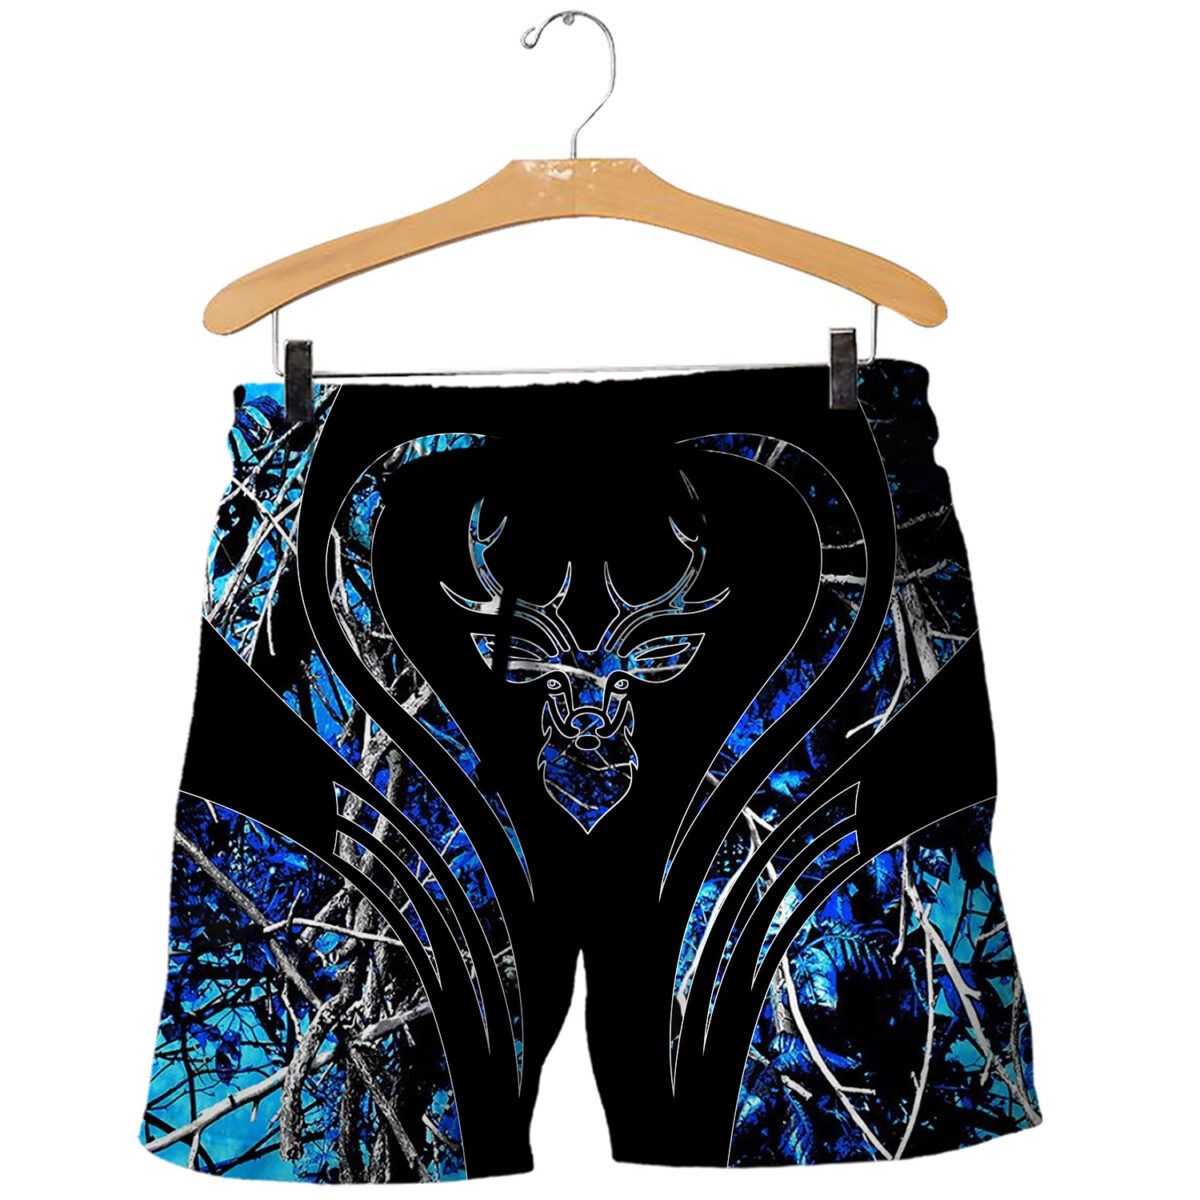 Deer Hunting Camo 3D All Over Printed Shirts for Men and Women 14